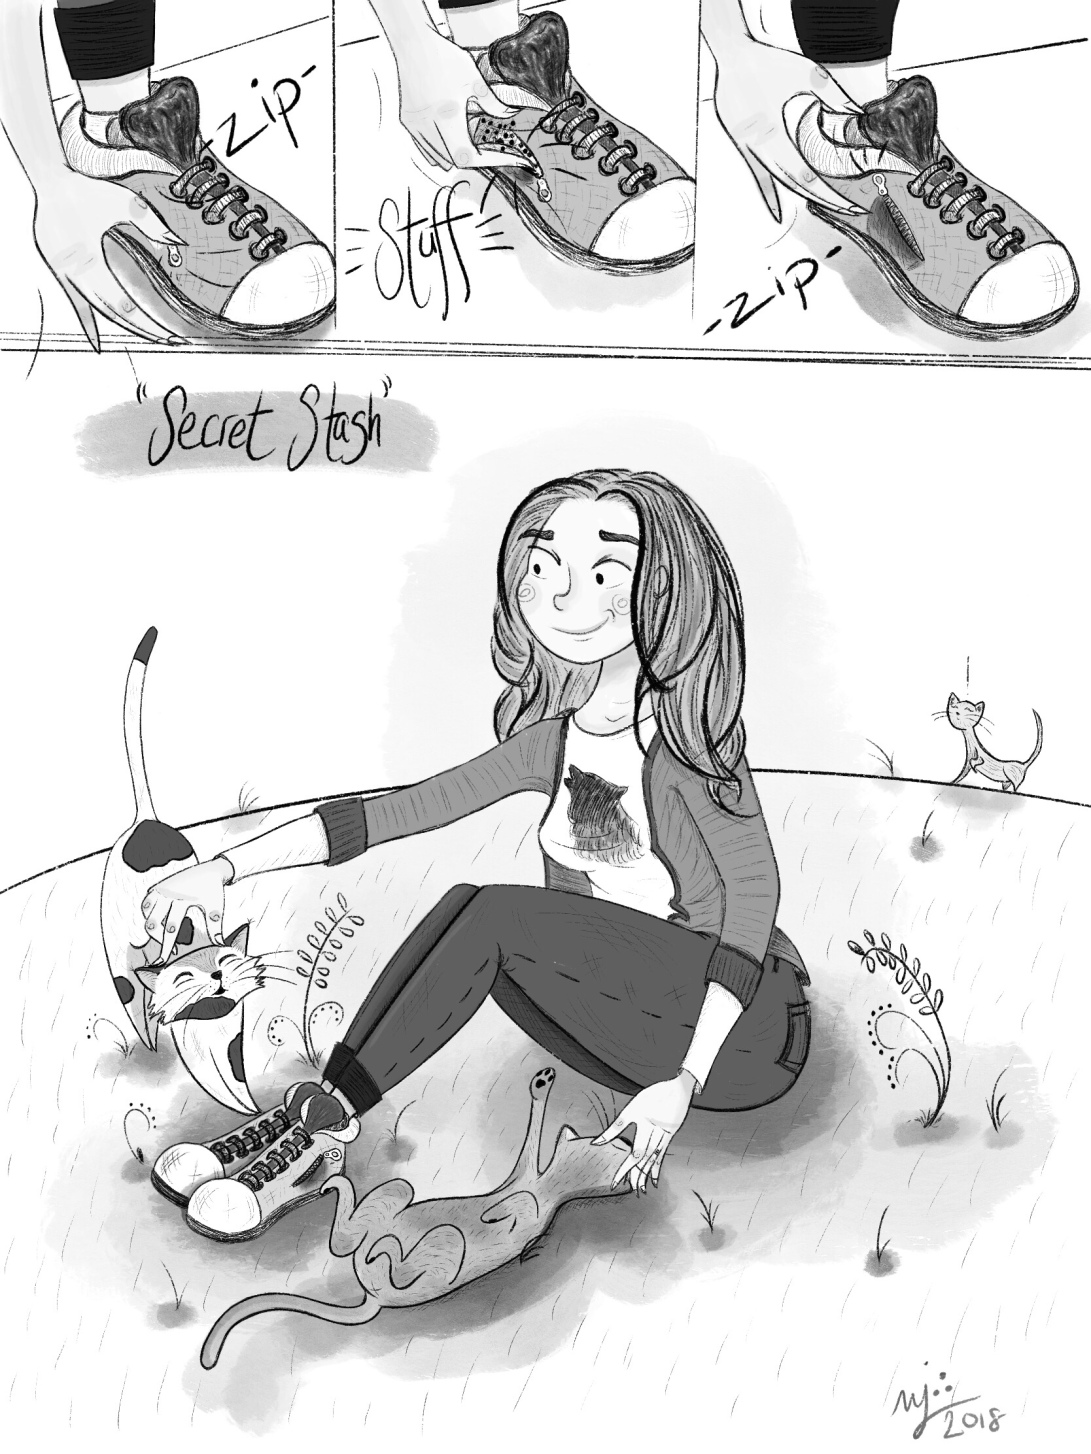 Rachel discovered the purpose of zippered pockets on shoes. Edit: I forgot to say that Rachel is the author of this comic! This was all her 🌟